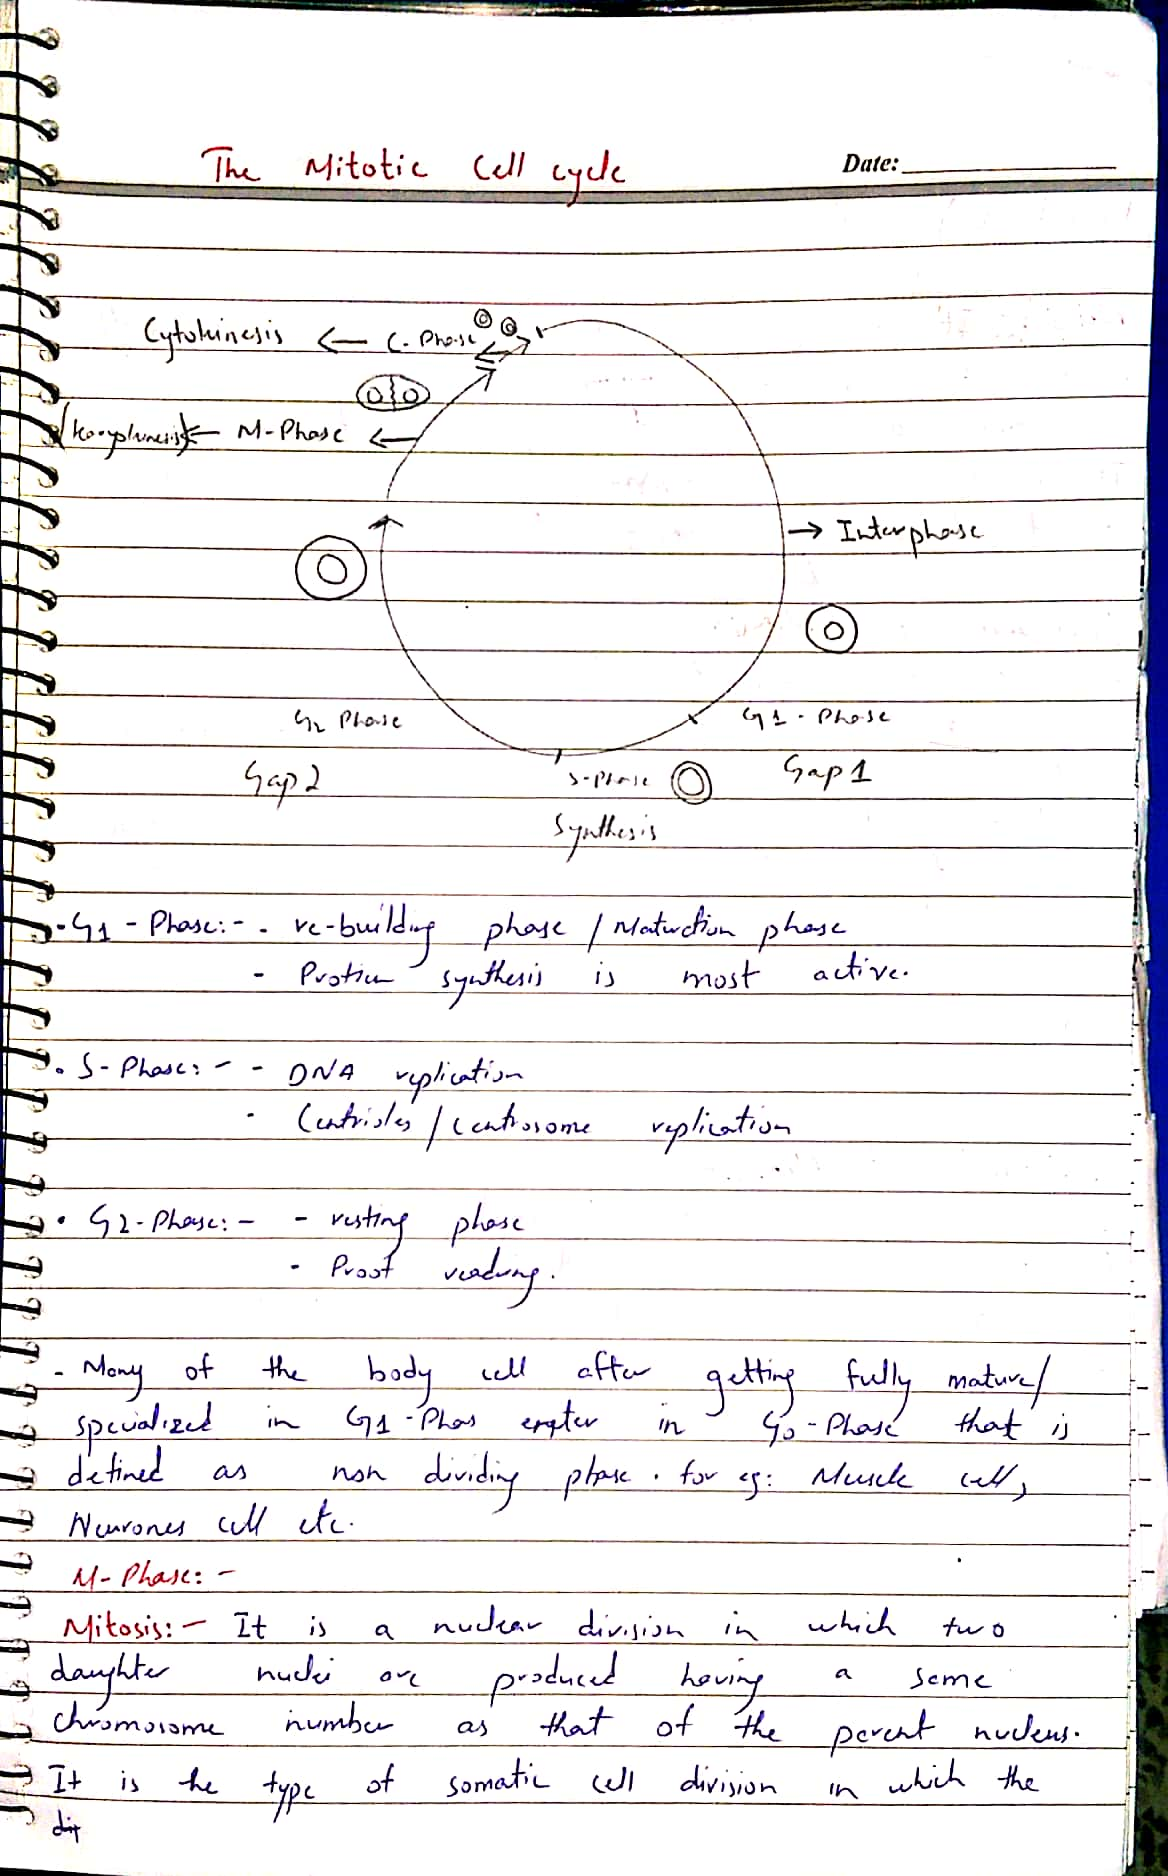 mitotic cycle._1